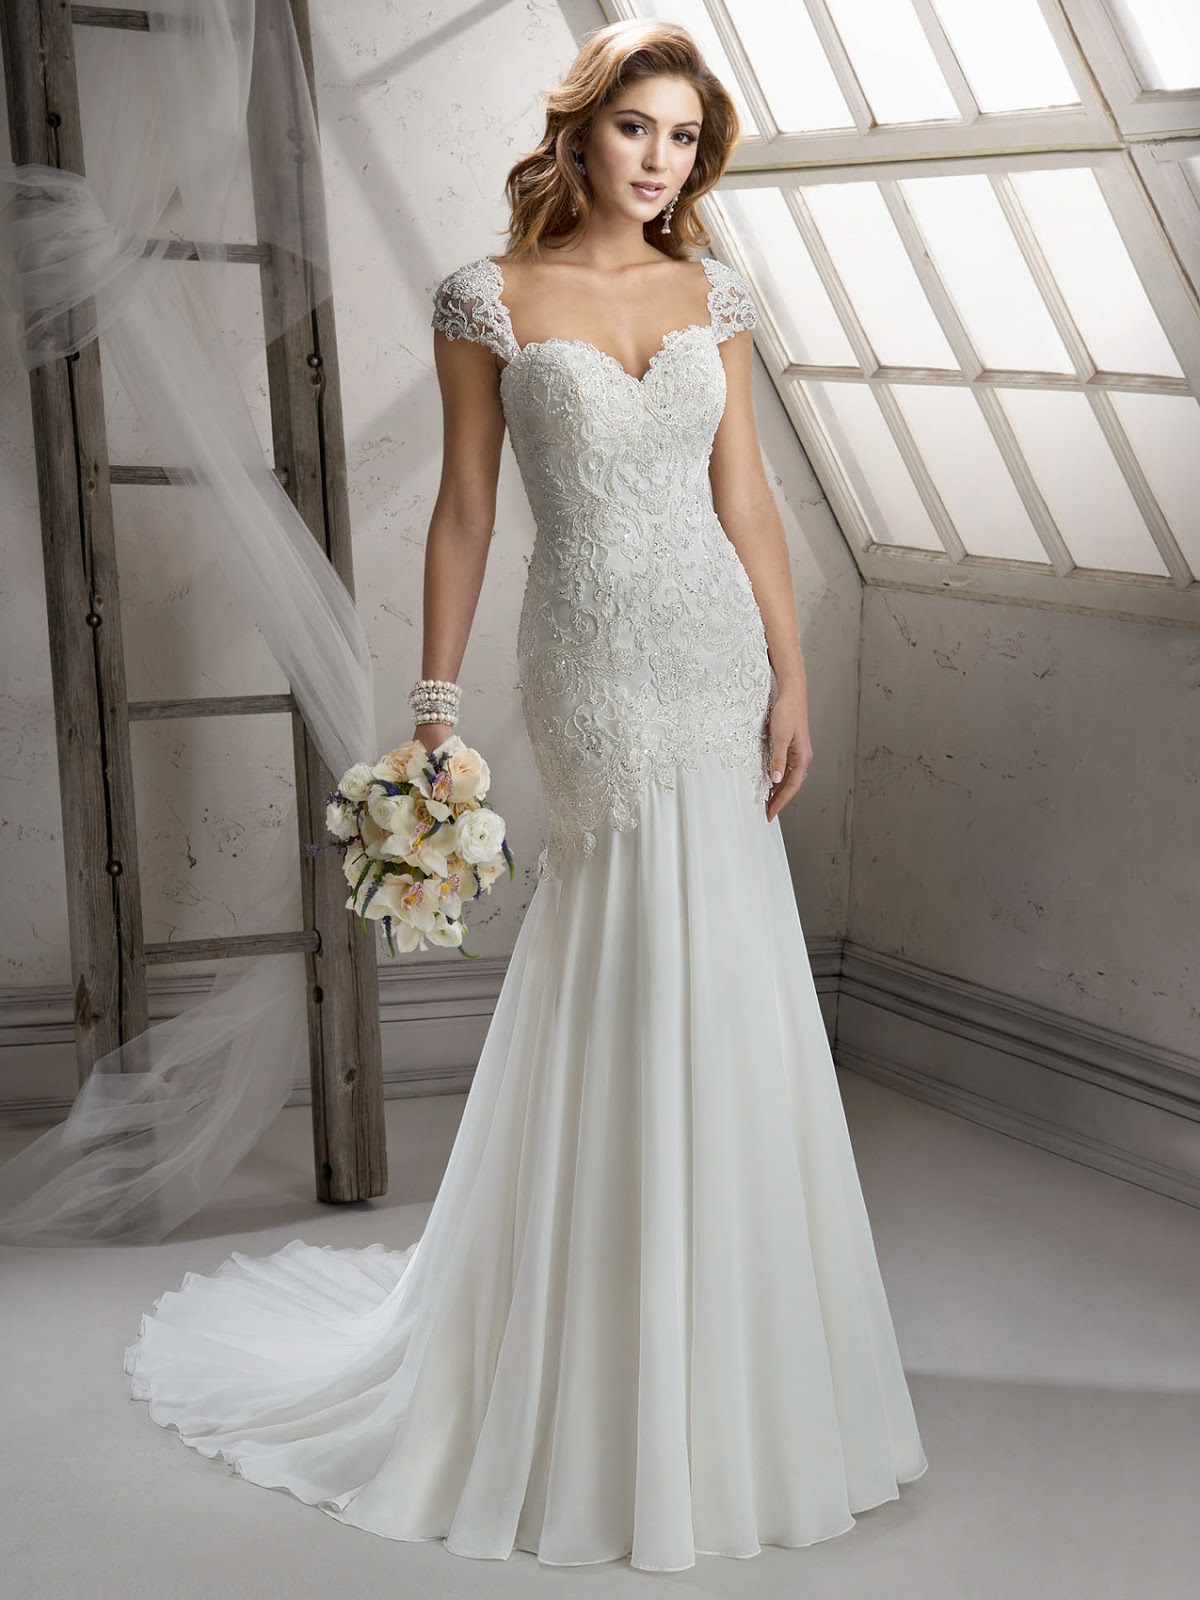 Wedding Dresses Nyc Cheap Wedding Dresses Cold Climates